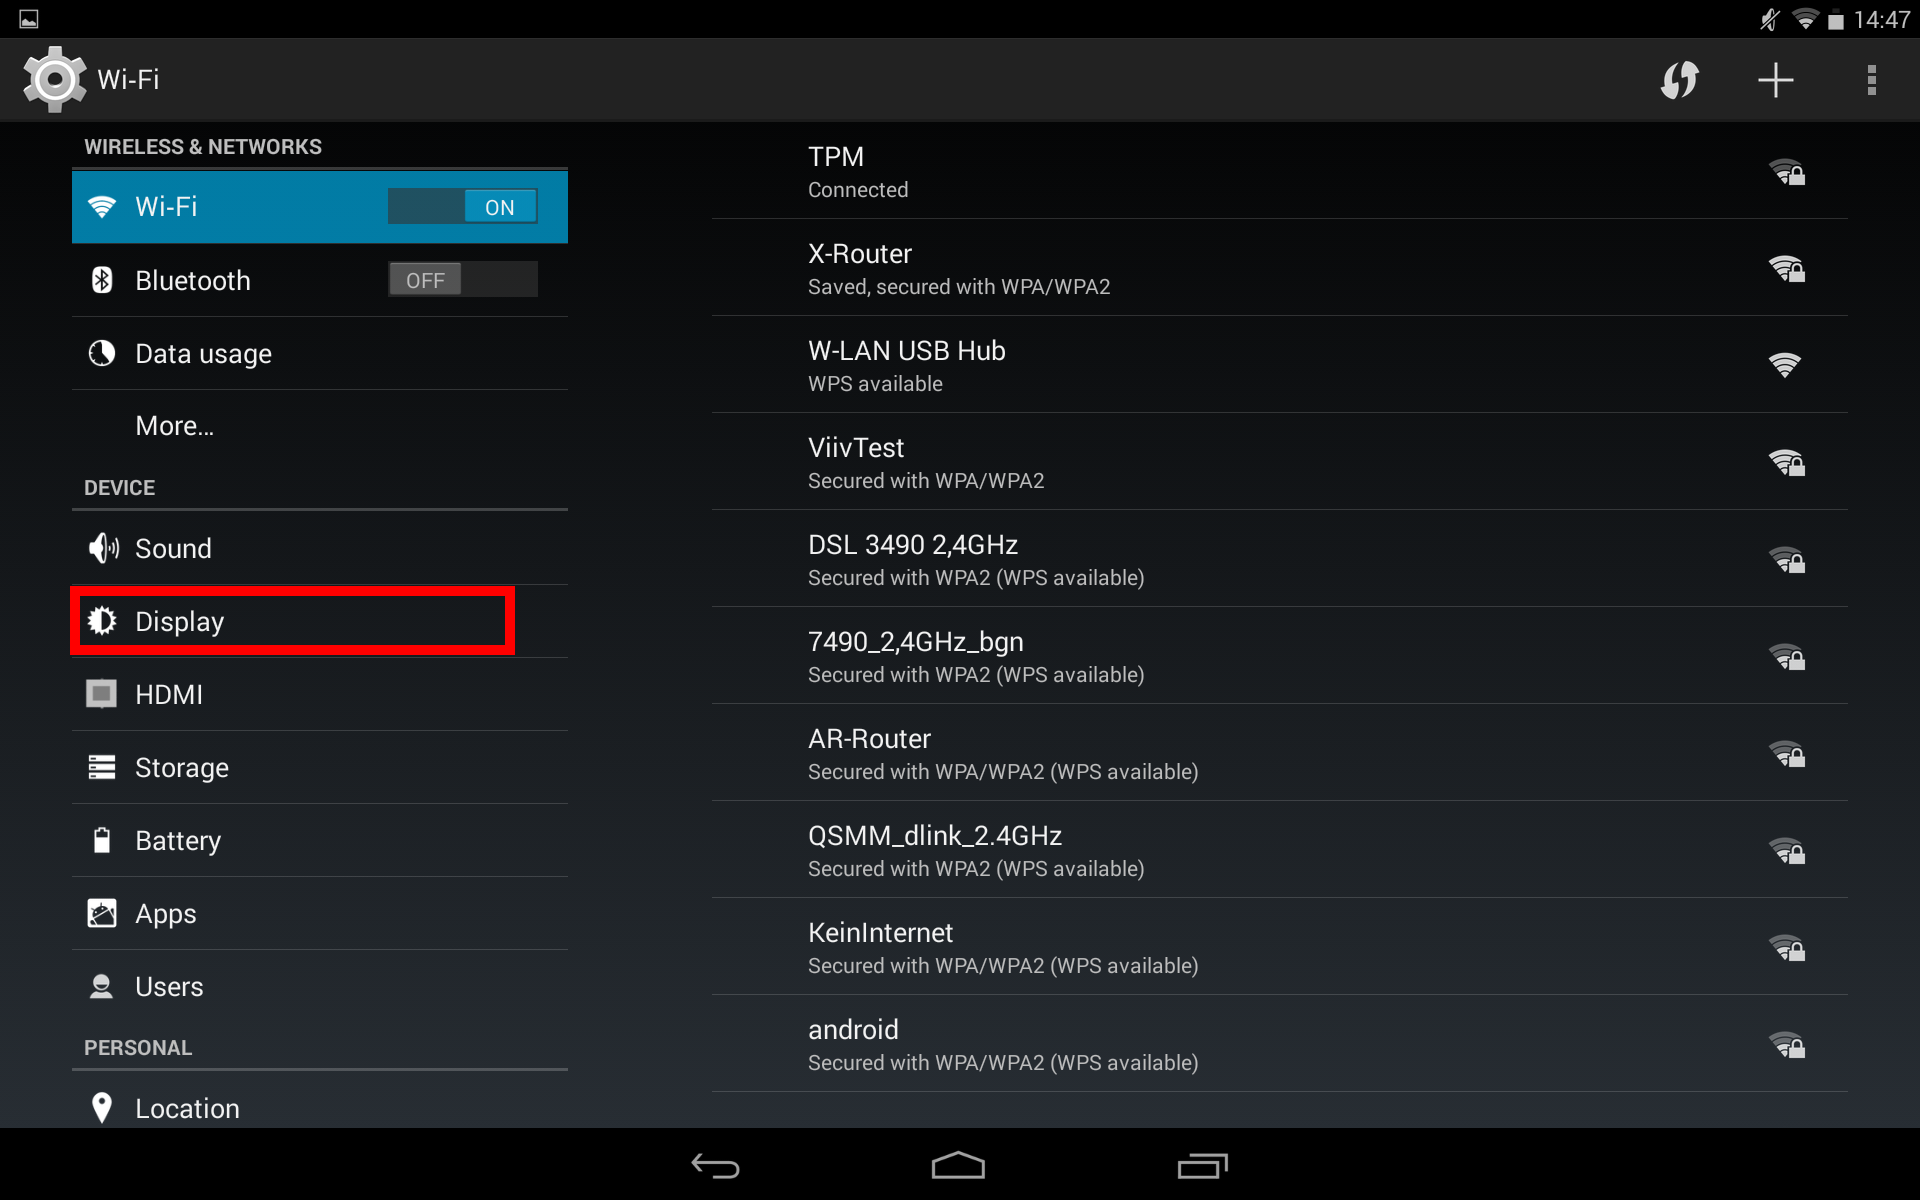 Step 1: Open the settings menu on your smartphone/tablet